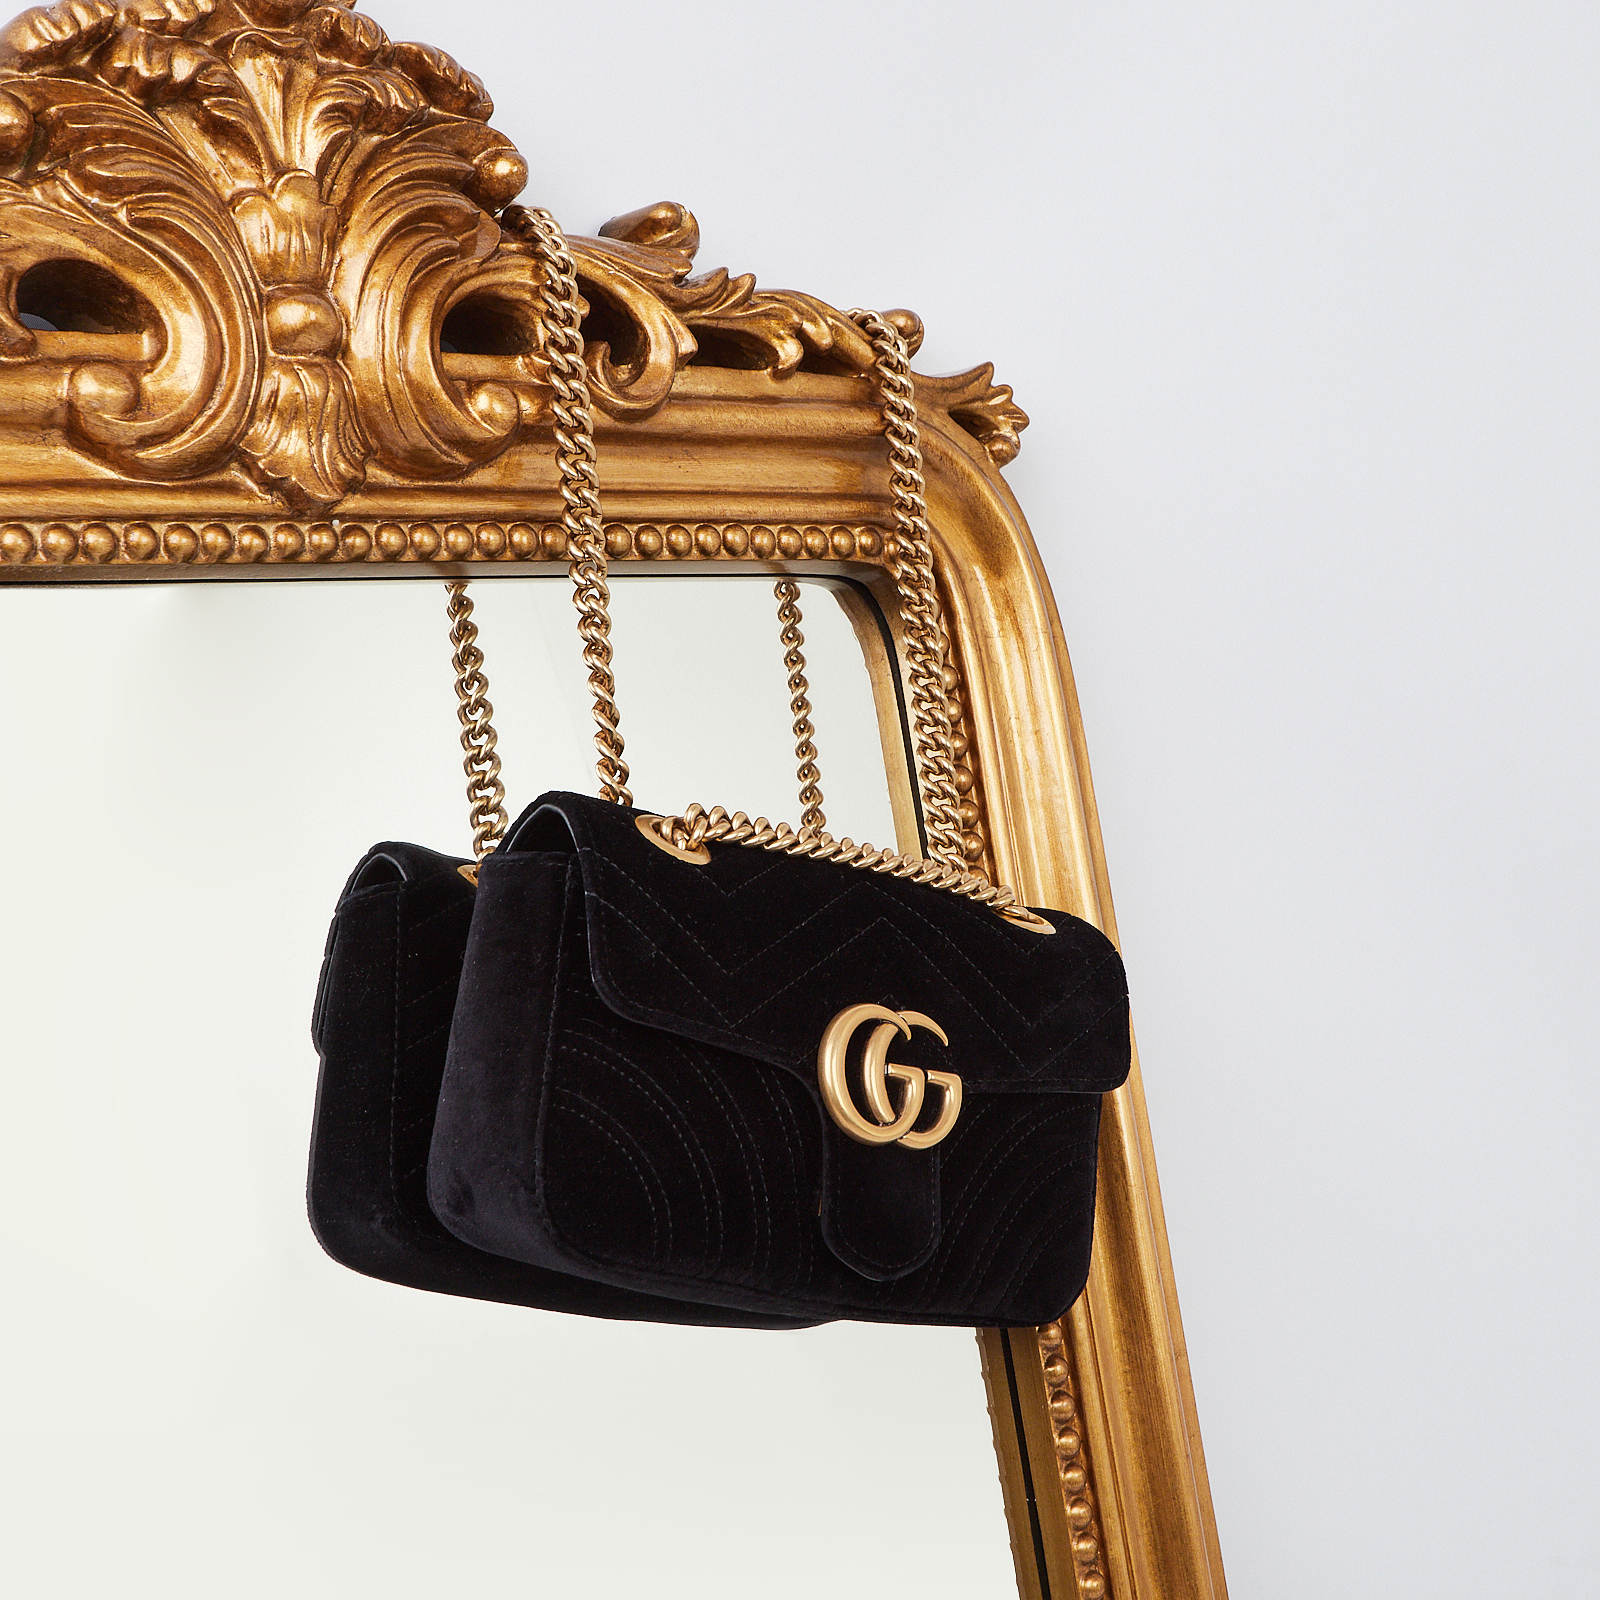 Gucci Marmont Flap Bag | Yoogi's Closet Authenticated Pre-Owned Luxury yoogiscloset.com